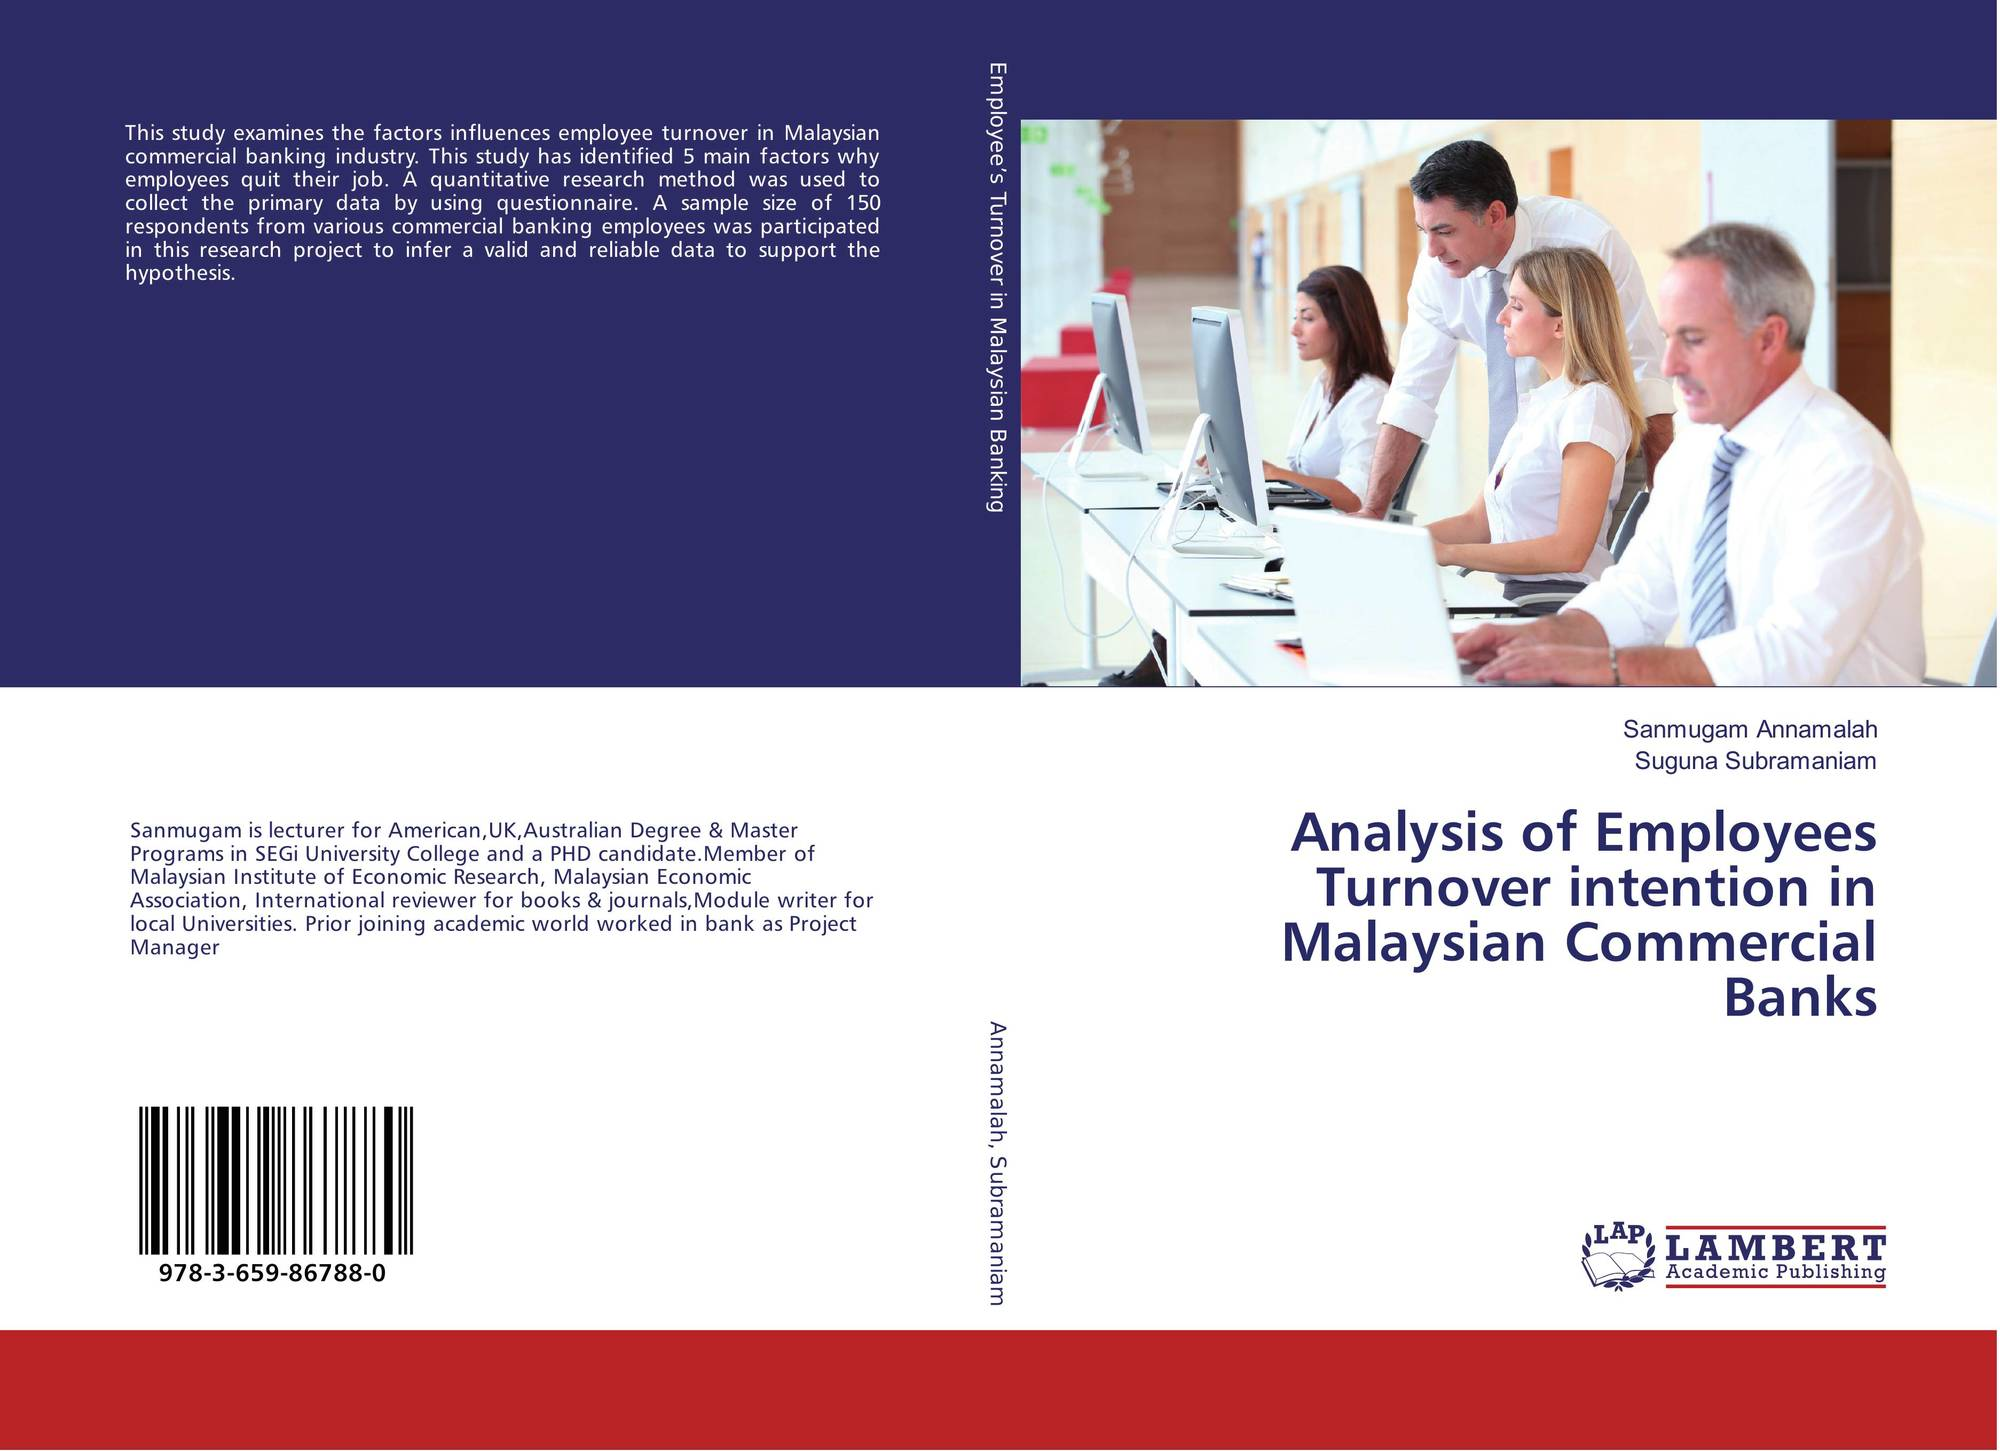 dissertation on turnover Unlv theses, dissertations, professional papers, and capstones fall 2011 literature review on turnover - to better understand the situation in macau.